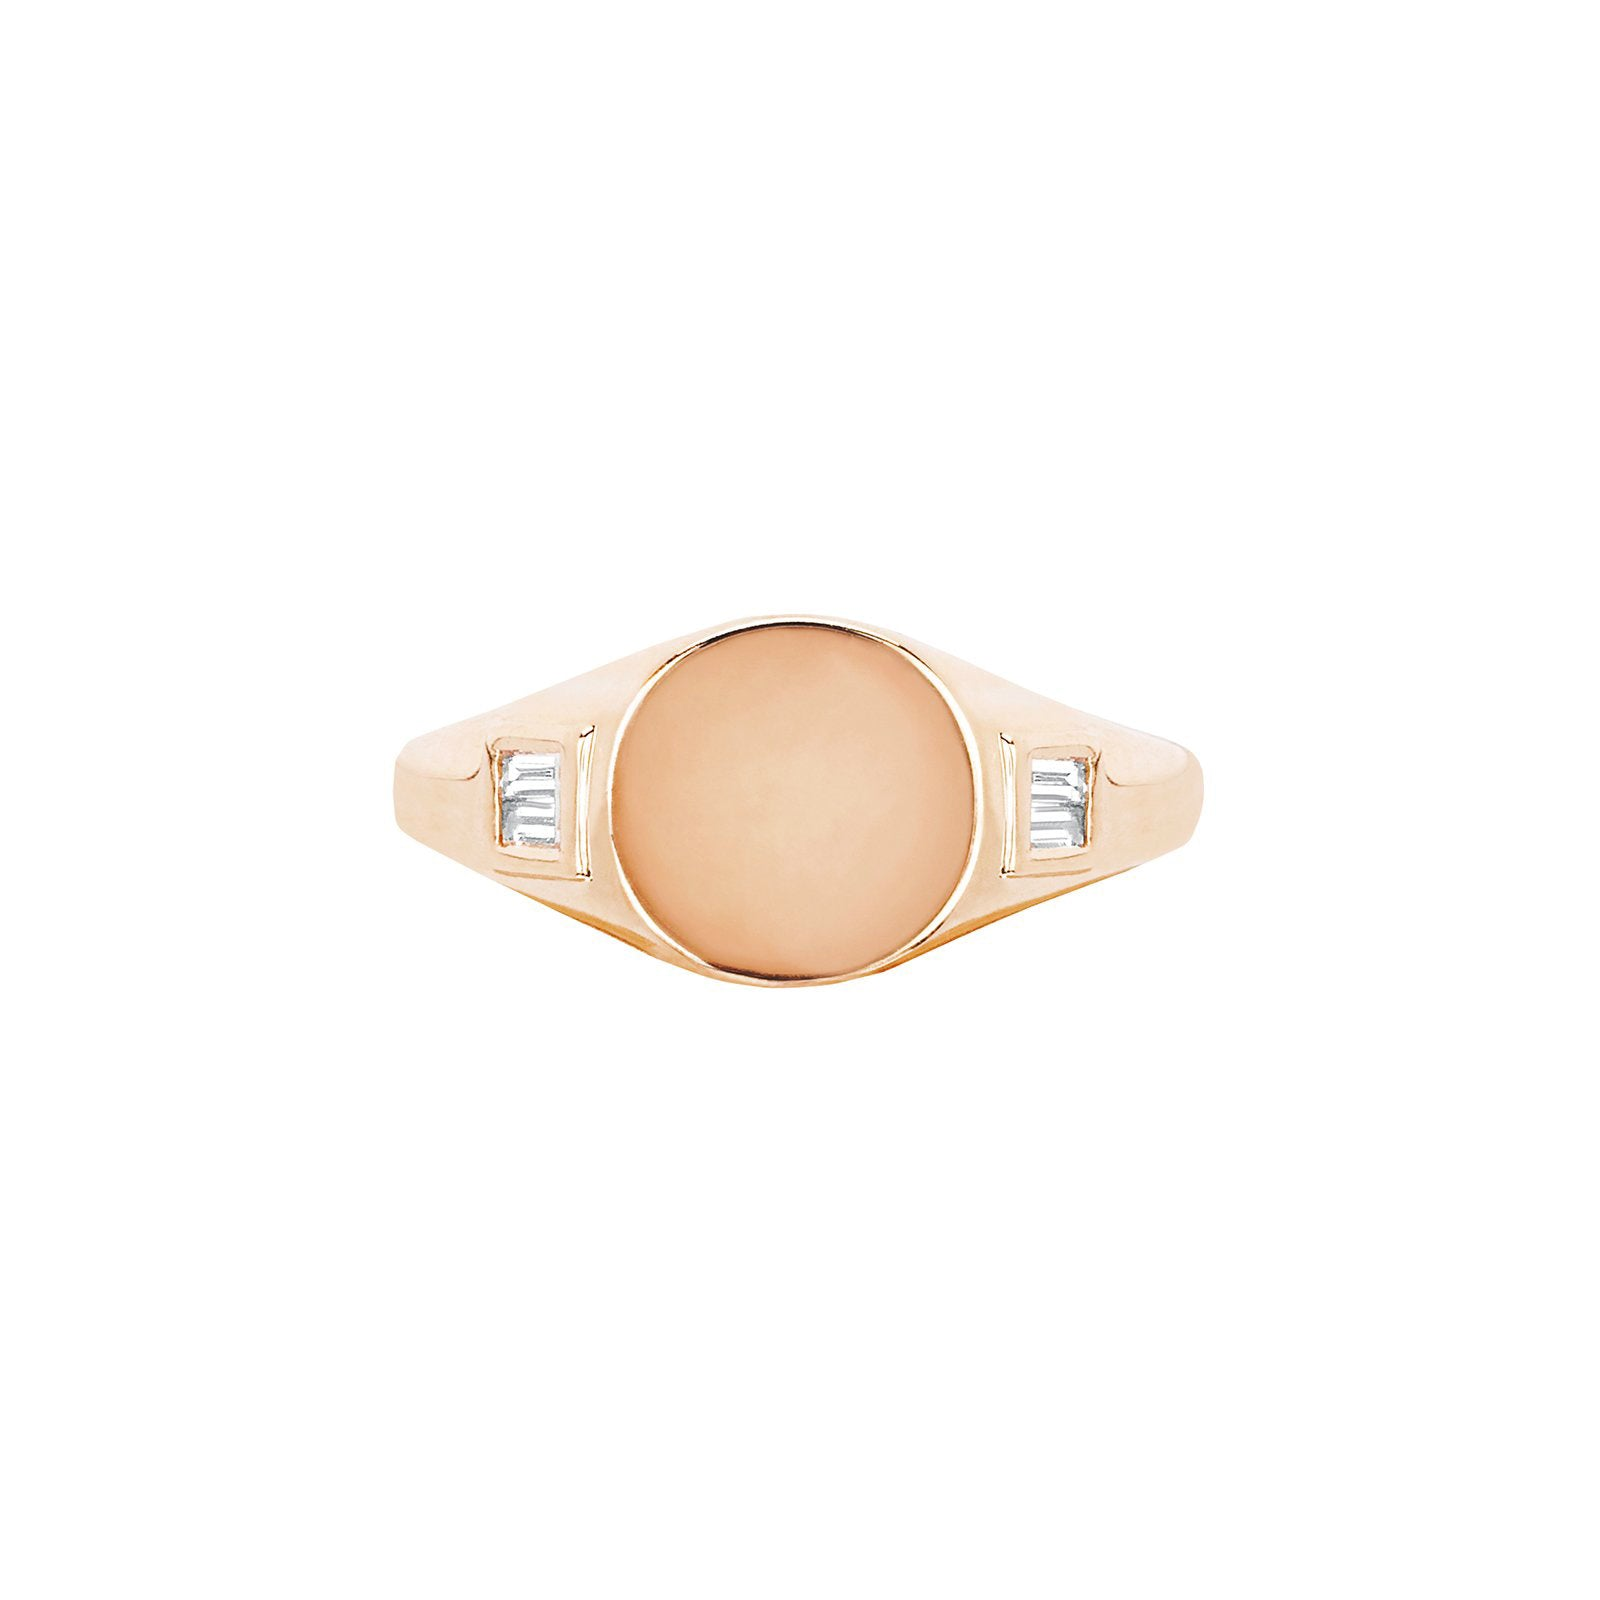 EF Collection Baguette Signet Ring - Rose Gold - Rings - Broken English Jewelry